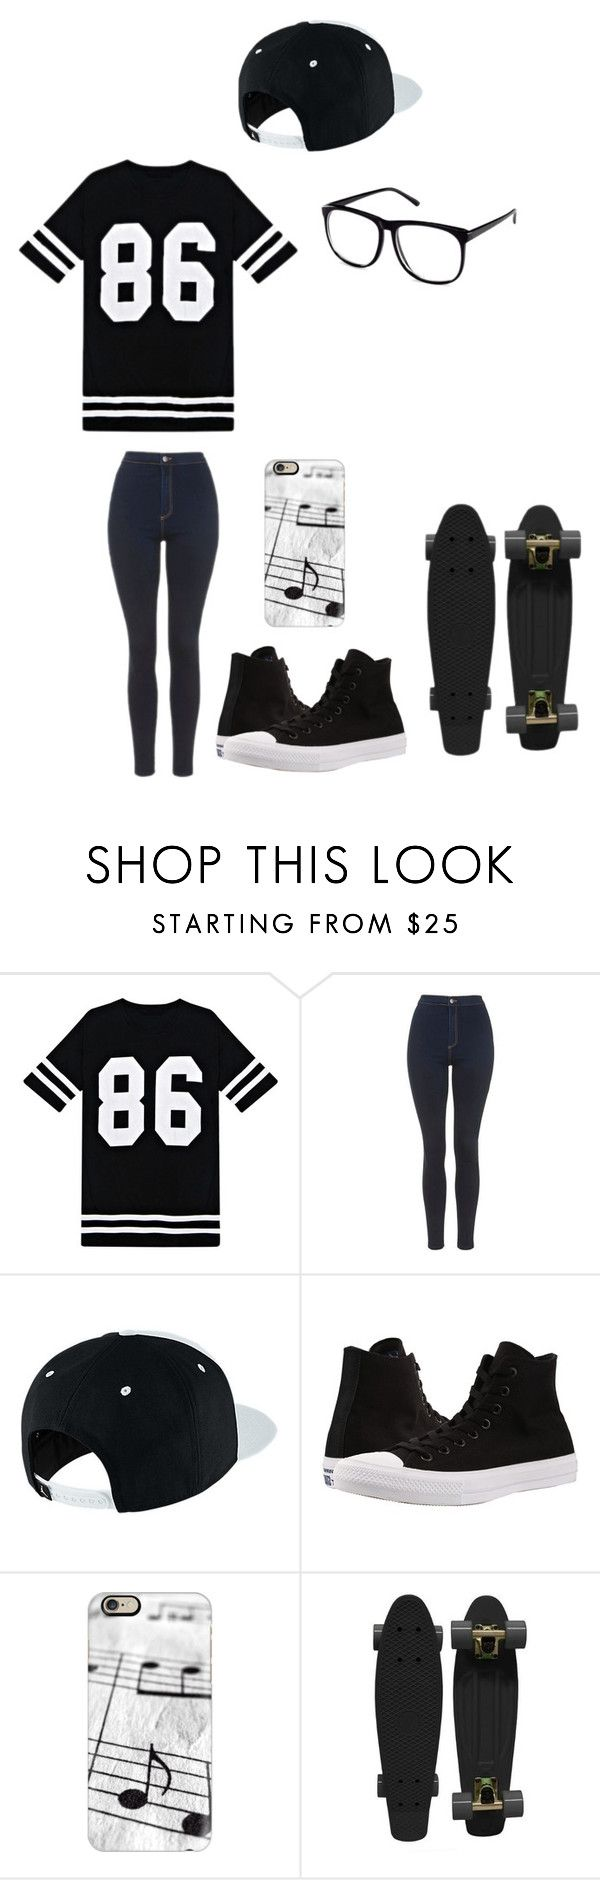 """Untitled #132"" by darksoul7 on Polyvore featuring Topshop, NIKE, Converse, Casetify, Retrò and H&M"